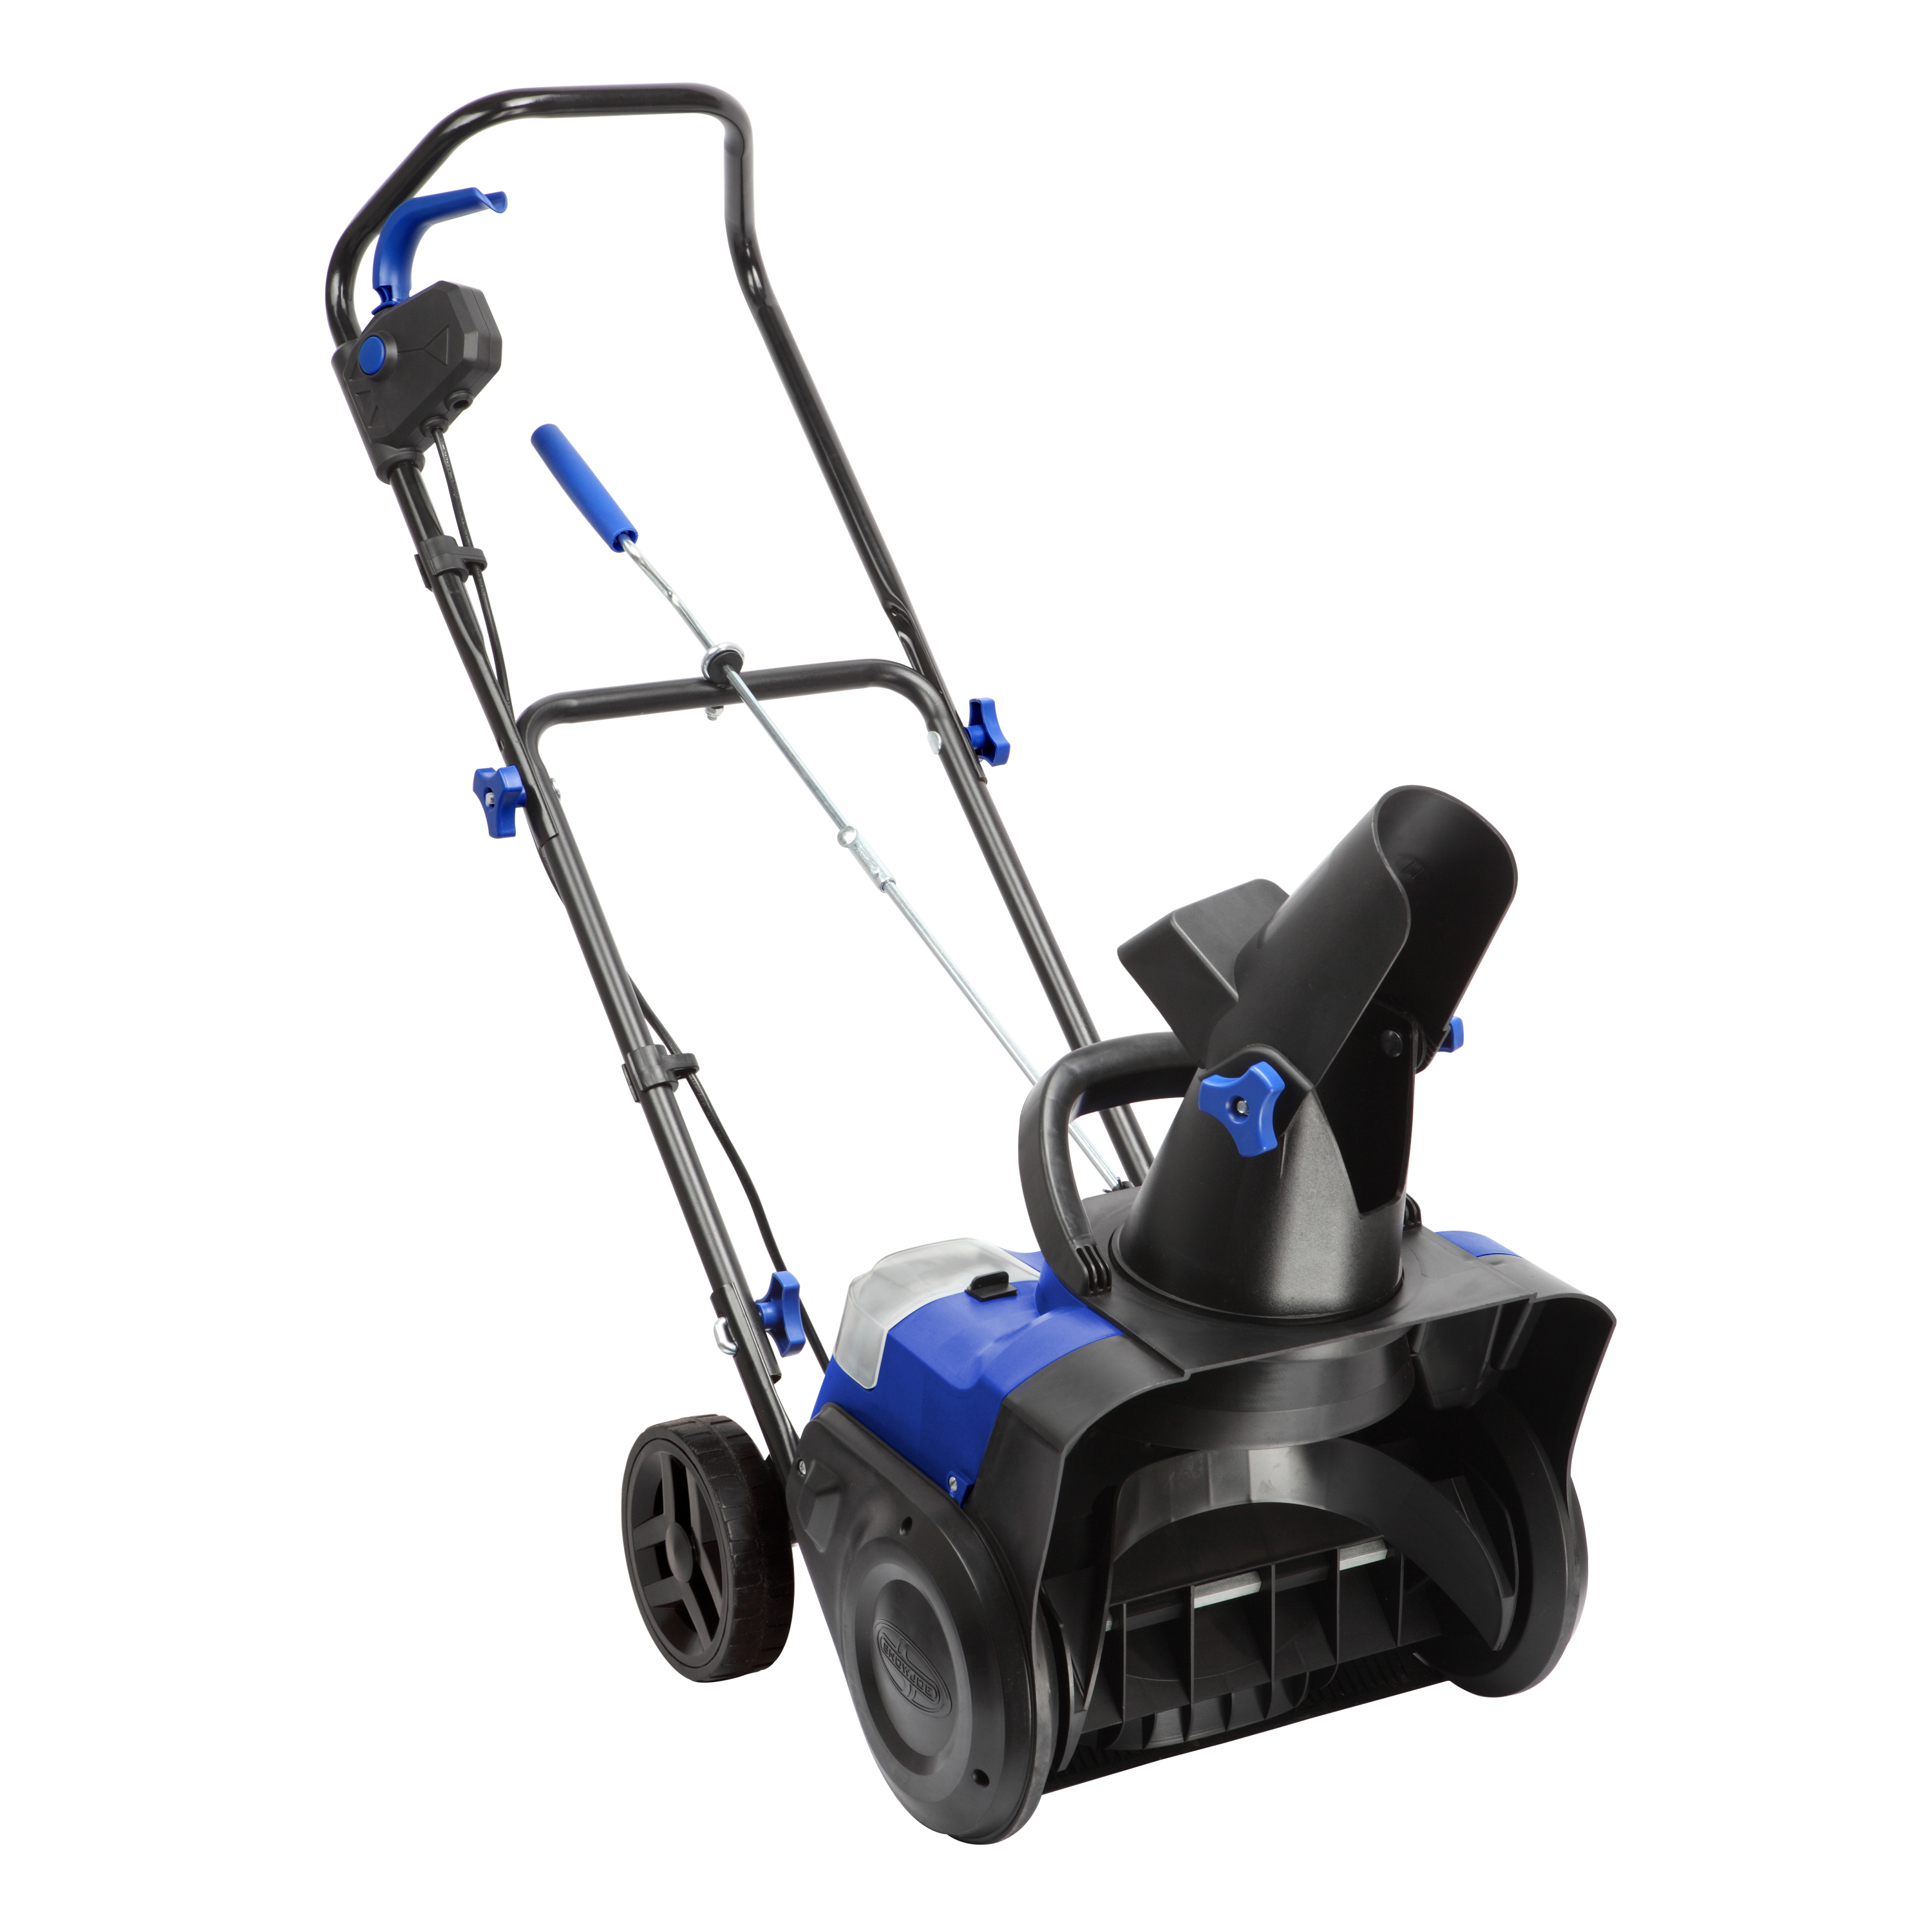 Snow Joe iON15SB-LT Cordless Single Stage Snow Blower | 15-Inch | 40 Volt